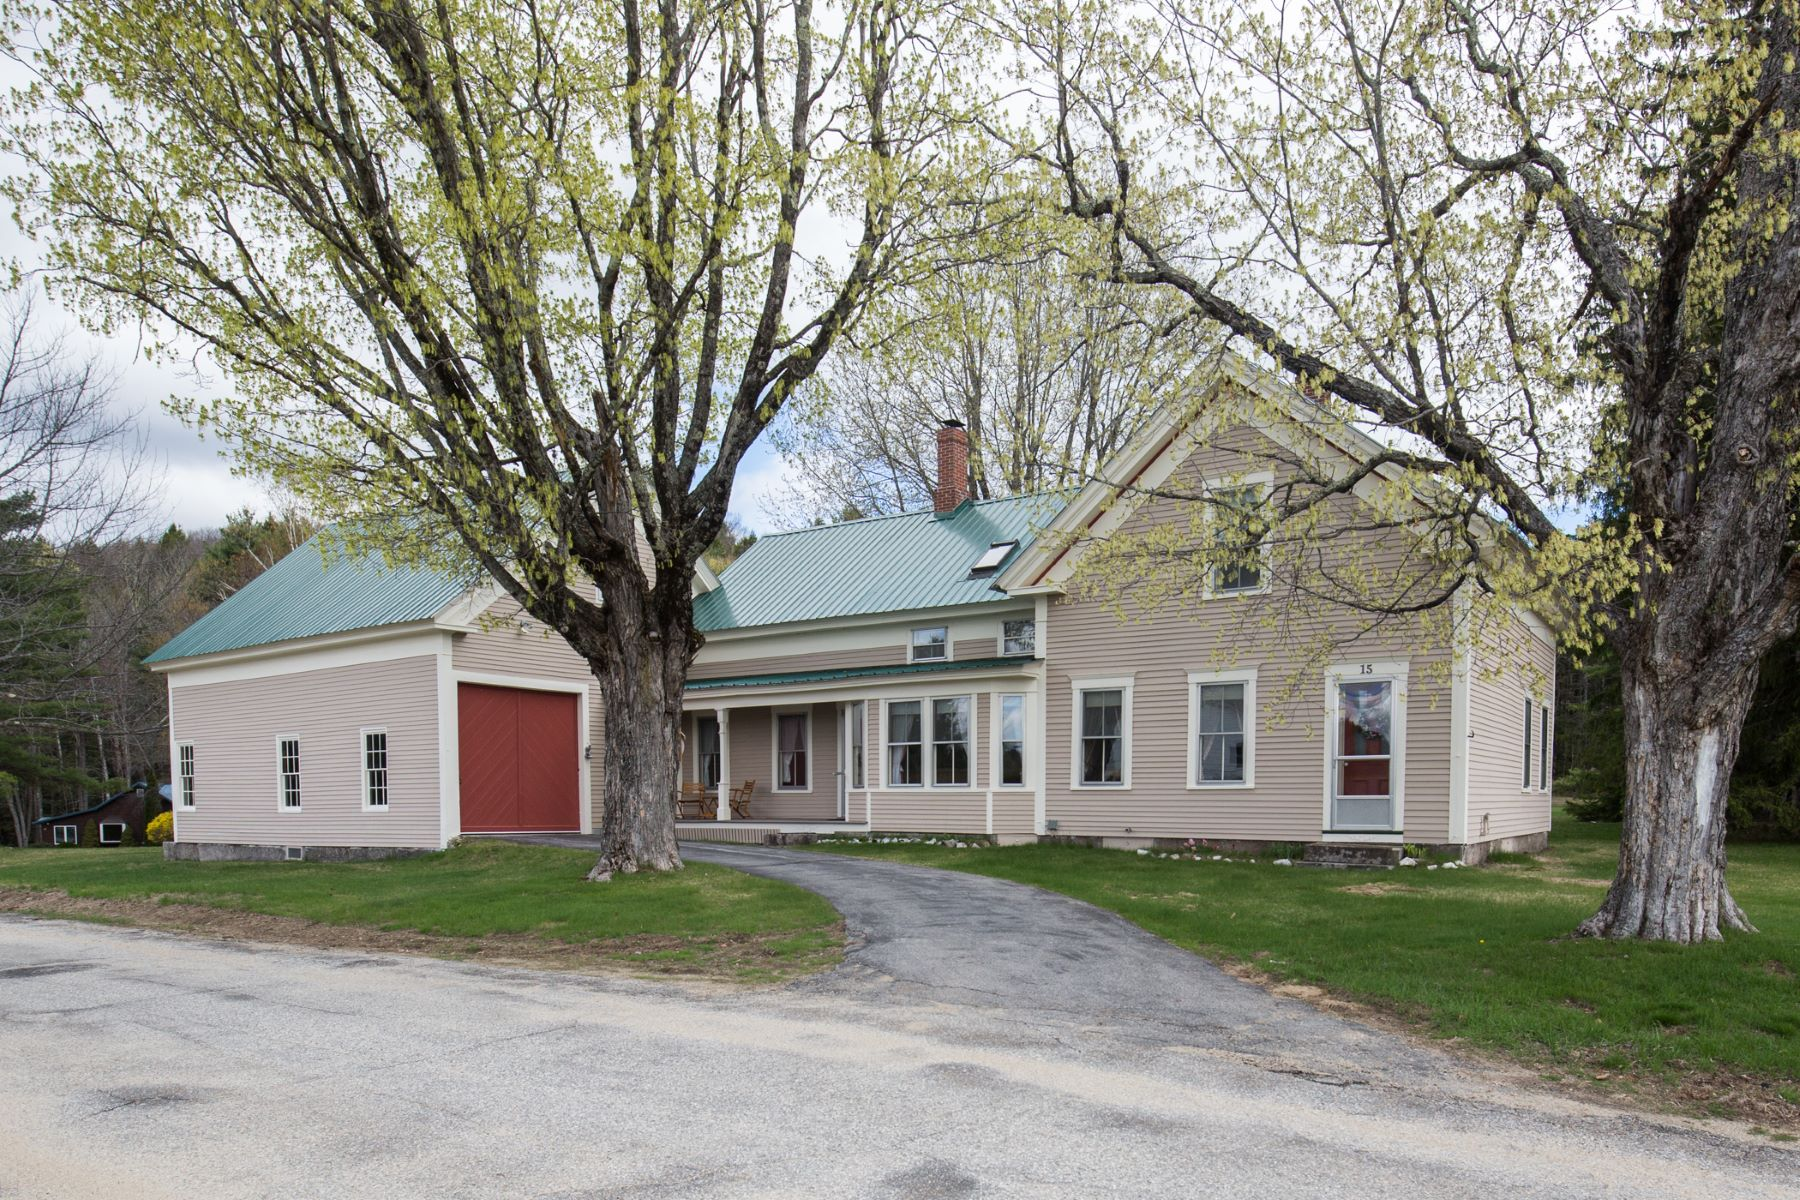 Single Family Home for Sale at 15 Camp Pondicherry Road 15 Camp Pondicherry Road Bridgton, Maine 04009 United States